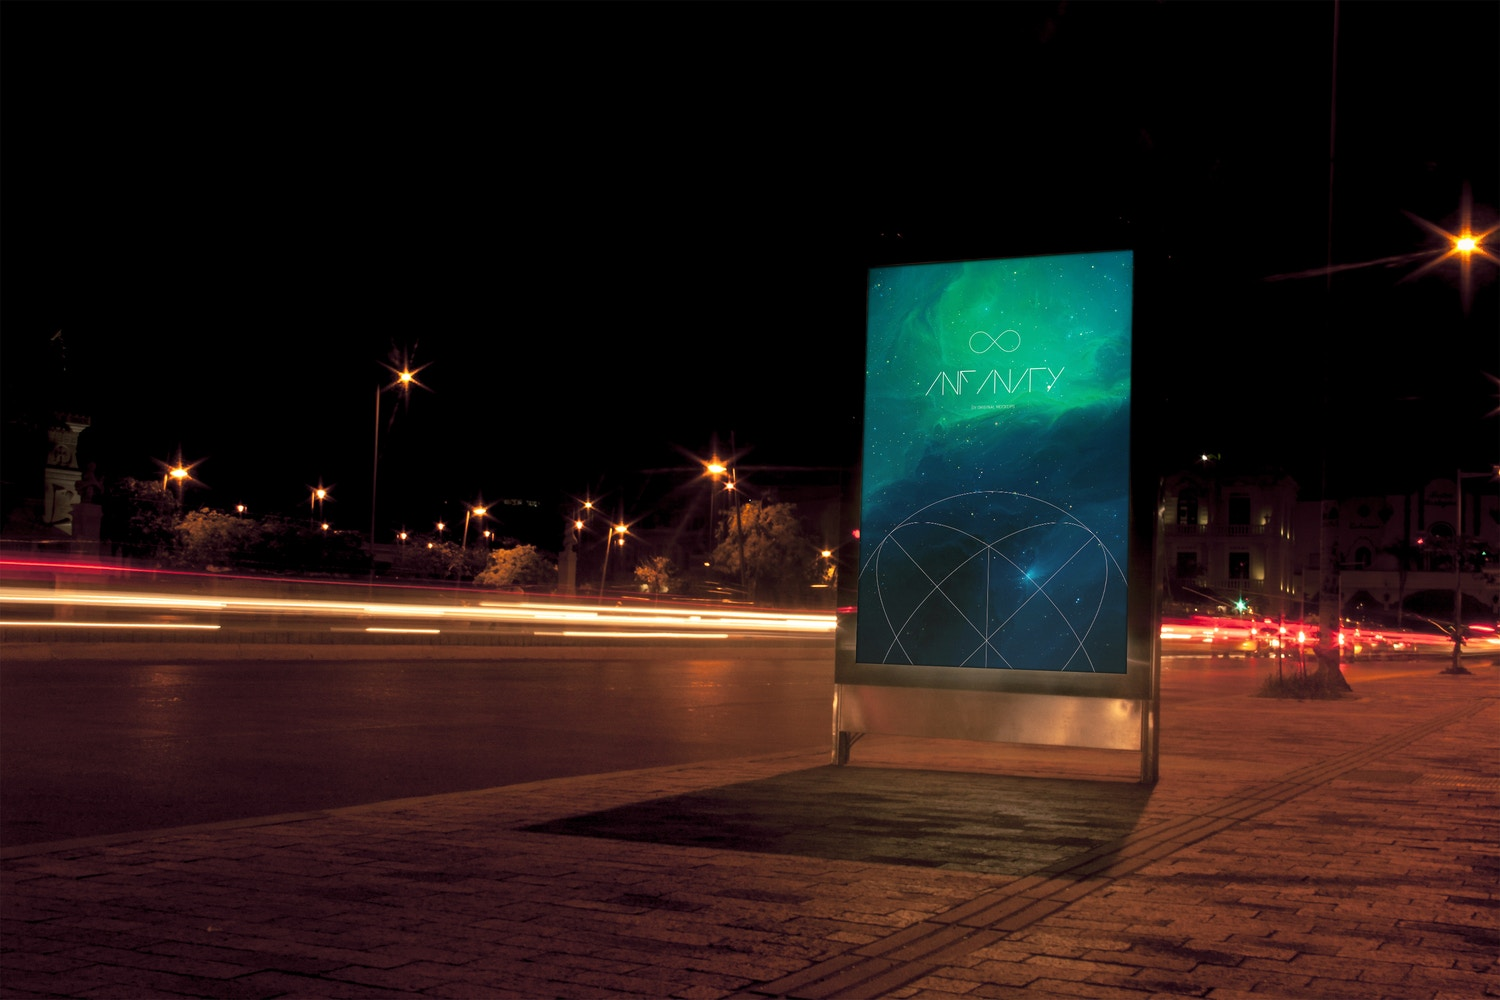 Mupi Billboard Mockup 1 by Original Mockups on Original Mockups